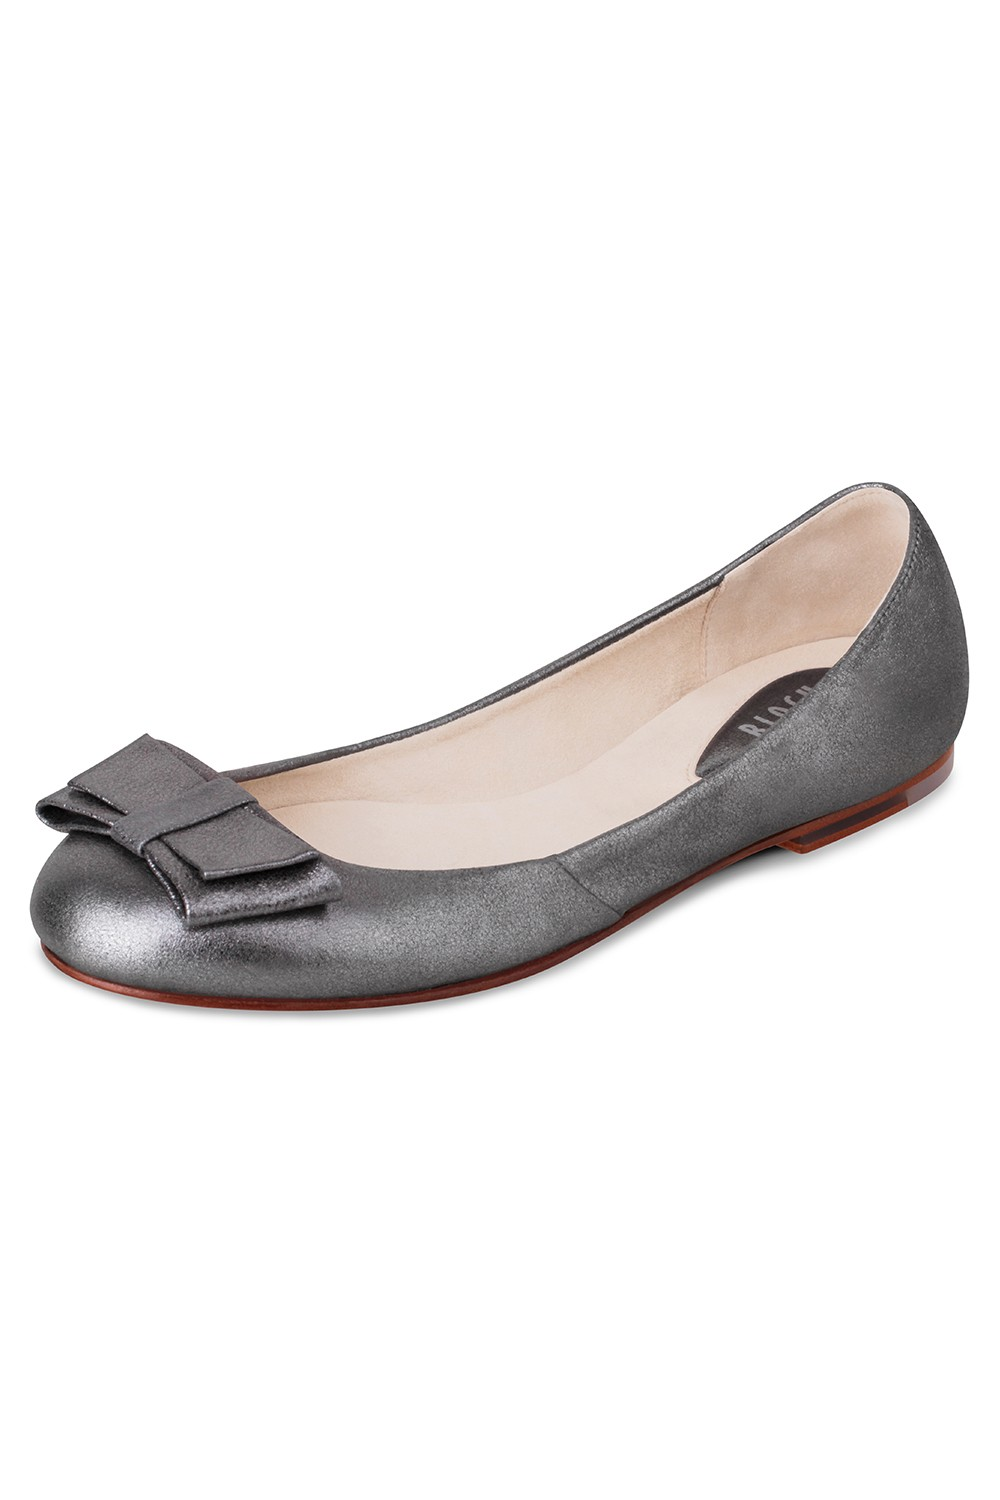 Juliette Ladies Ballet Flat Womens Fashion Shoes